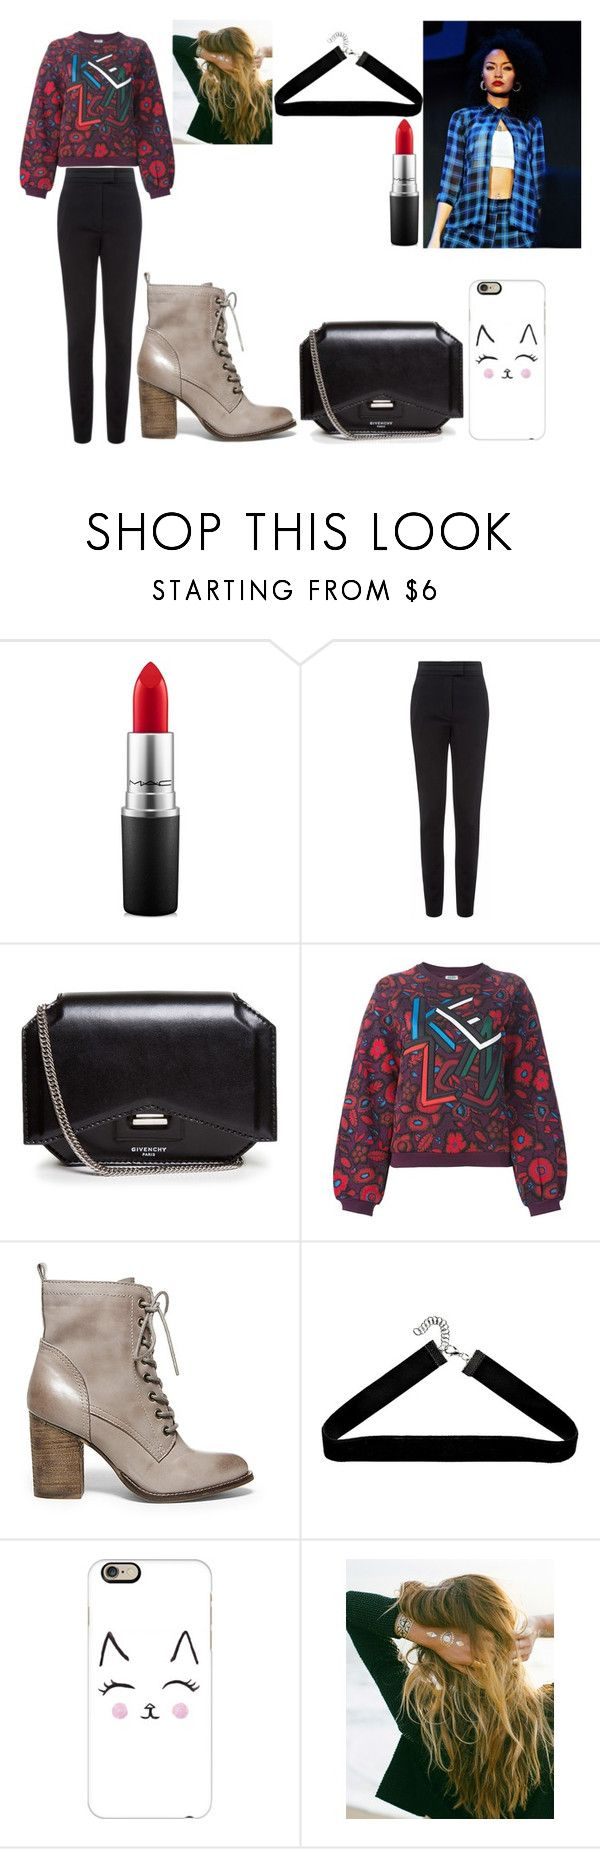 """""""rock climbing with leigh"""" by reythefrog ❤ liked on Polyvore featuring MAC Cosmetics, Vielma London, Givenchy, Kenzo, Steve Madden, Casetify, Lulu DK, women's clothing, women's fashion and women"""